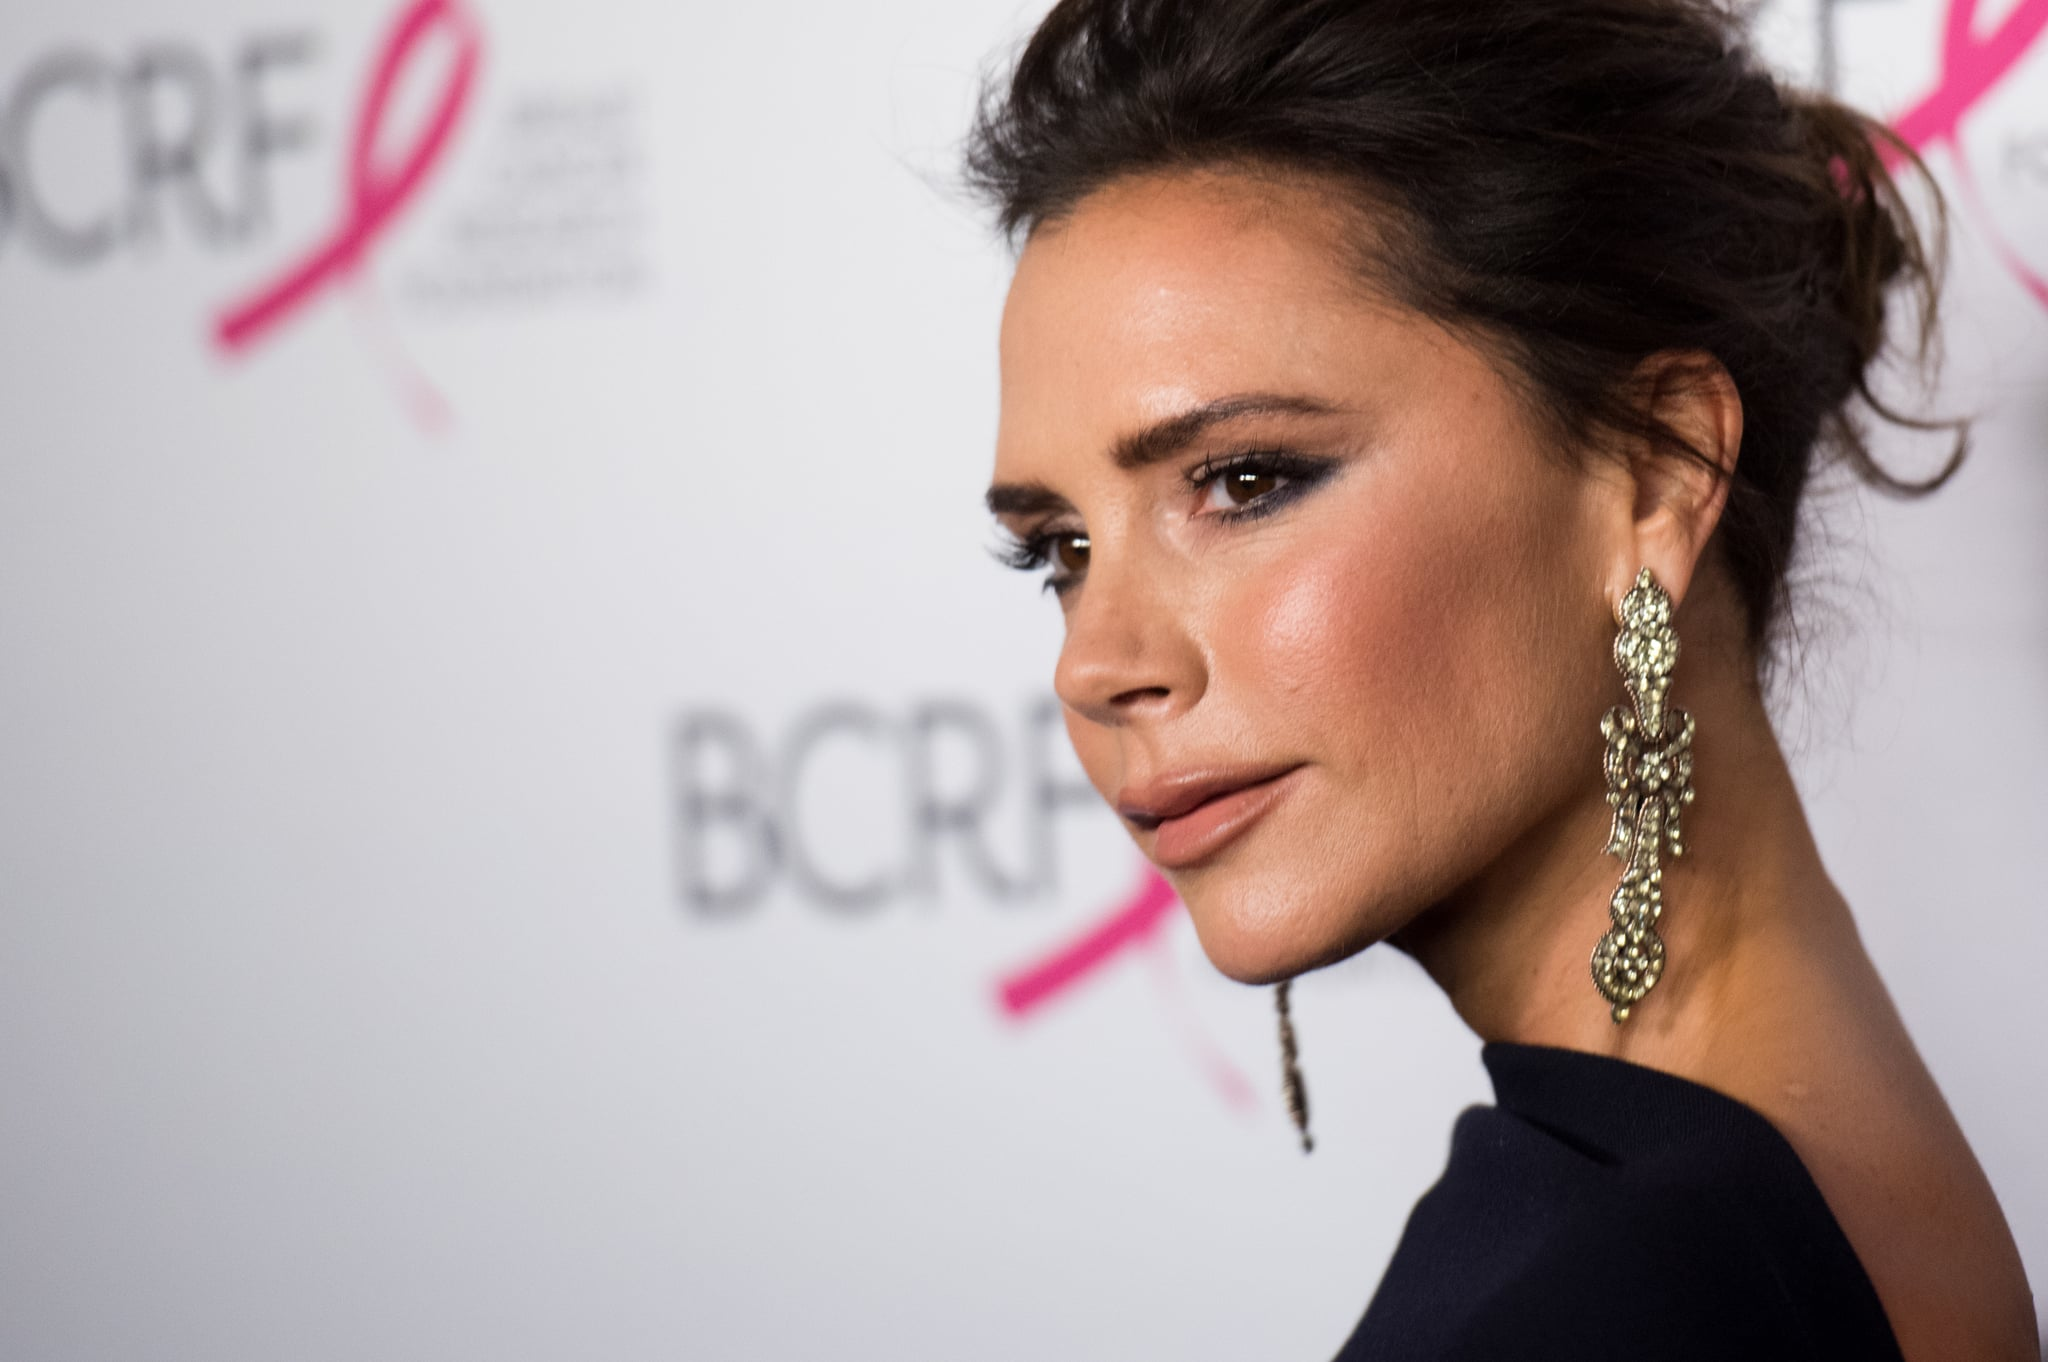 NEW YORK, NY - MAY 12:  Victoria Beckham attends the 2017 Breast Cancer Research Foundation Hot Pink Party at Park Avenue Armory on May 12, 2017 in New York City.  (Photo by Noam Galai/WireImage)